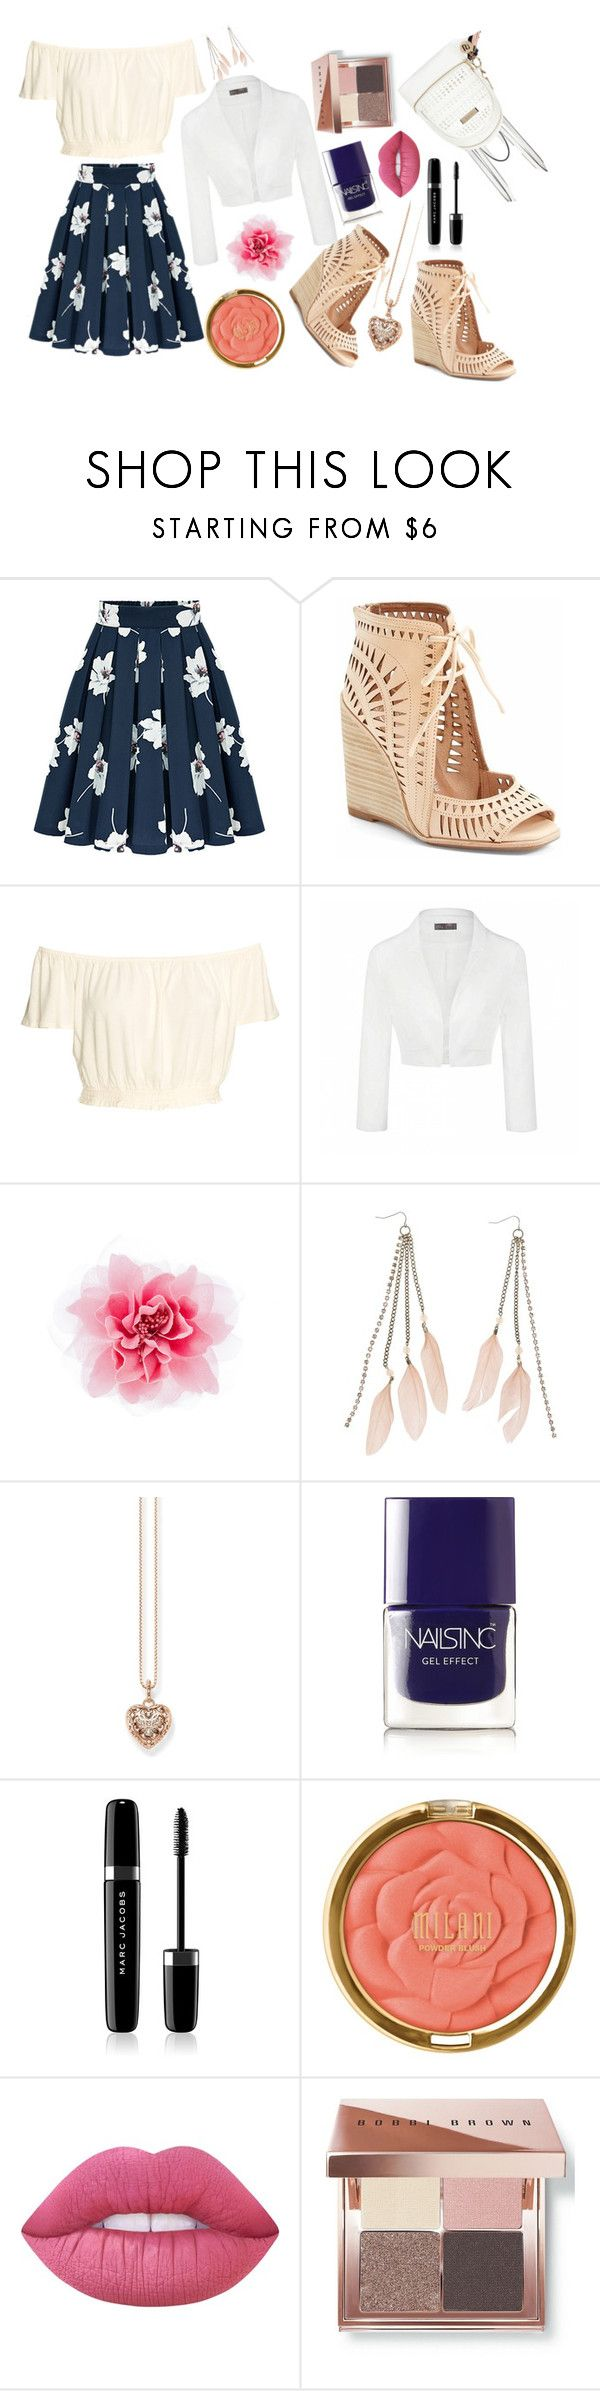 #4 by kitten-mittens on Polyvore featuring Ally Fashion, Jeffrey Campbell, River Island, Thomas Sabo, Charlotte Russe, Bobbi Brown Cosmetics, Milani, Marc Jacobs, Lime Crime and Nails Inc.